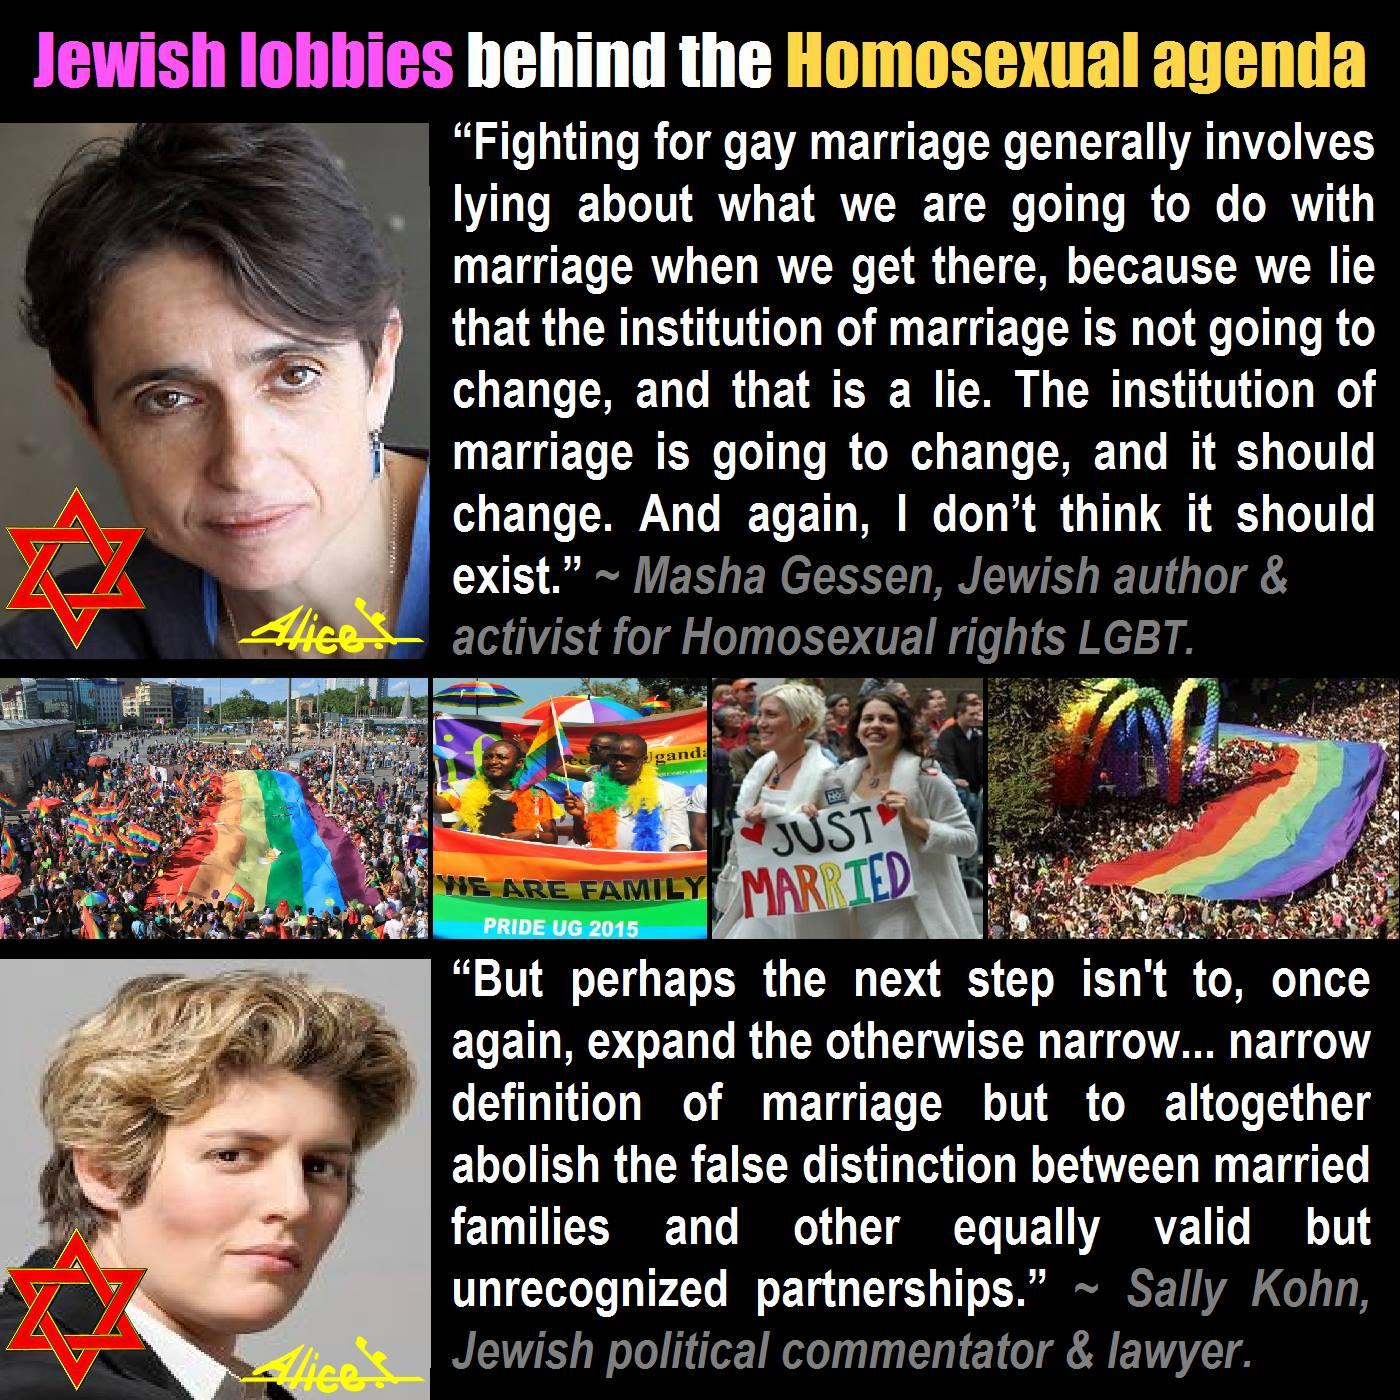 What does homosexual agenda mean